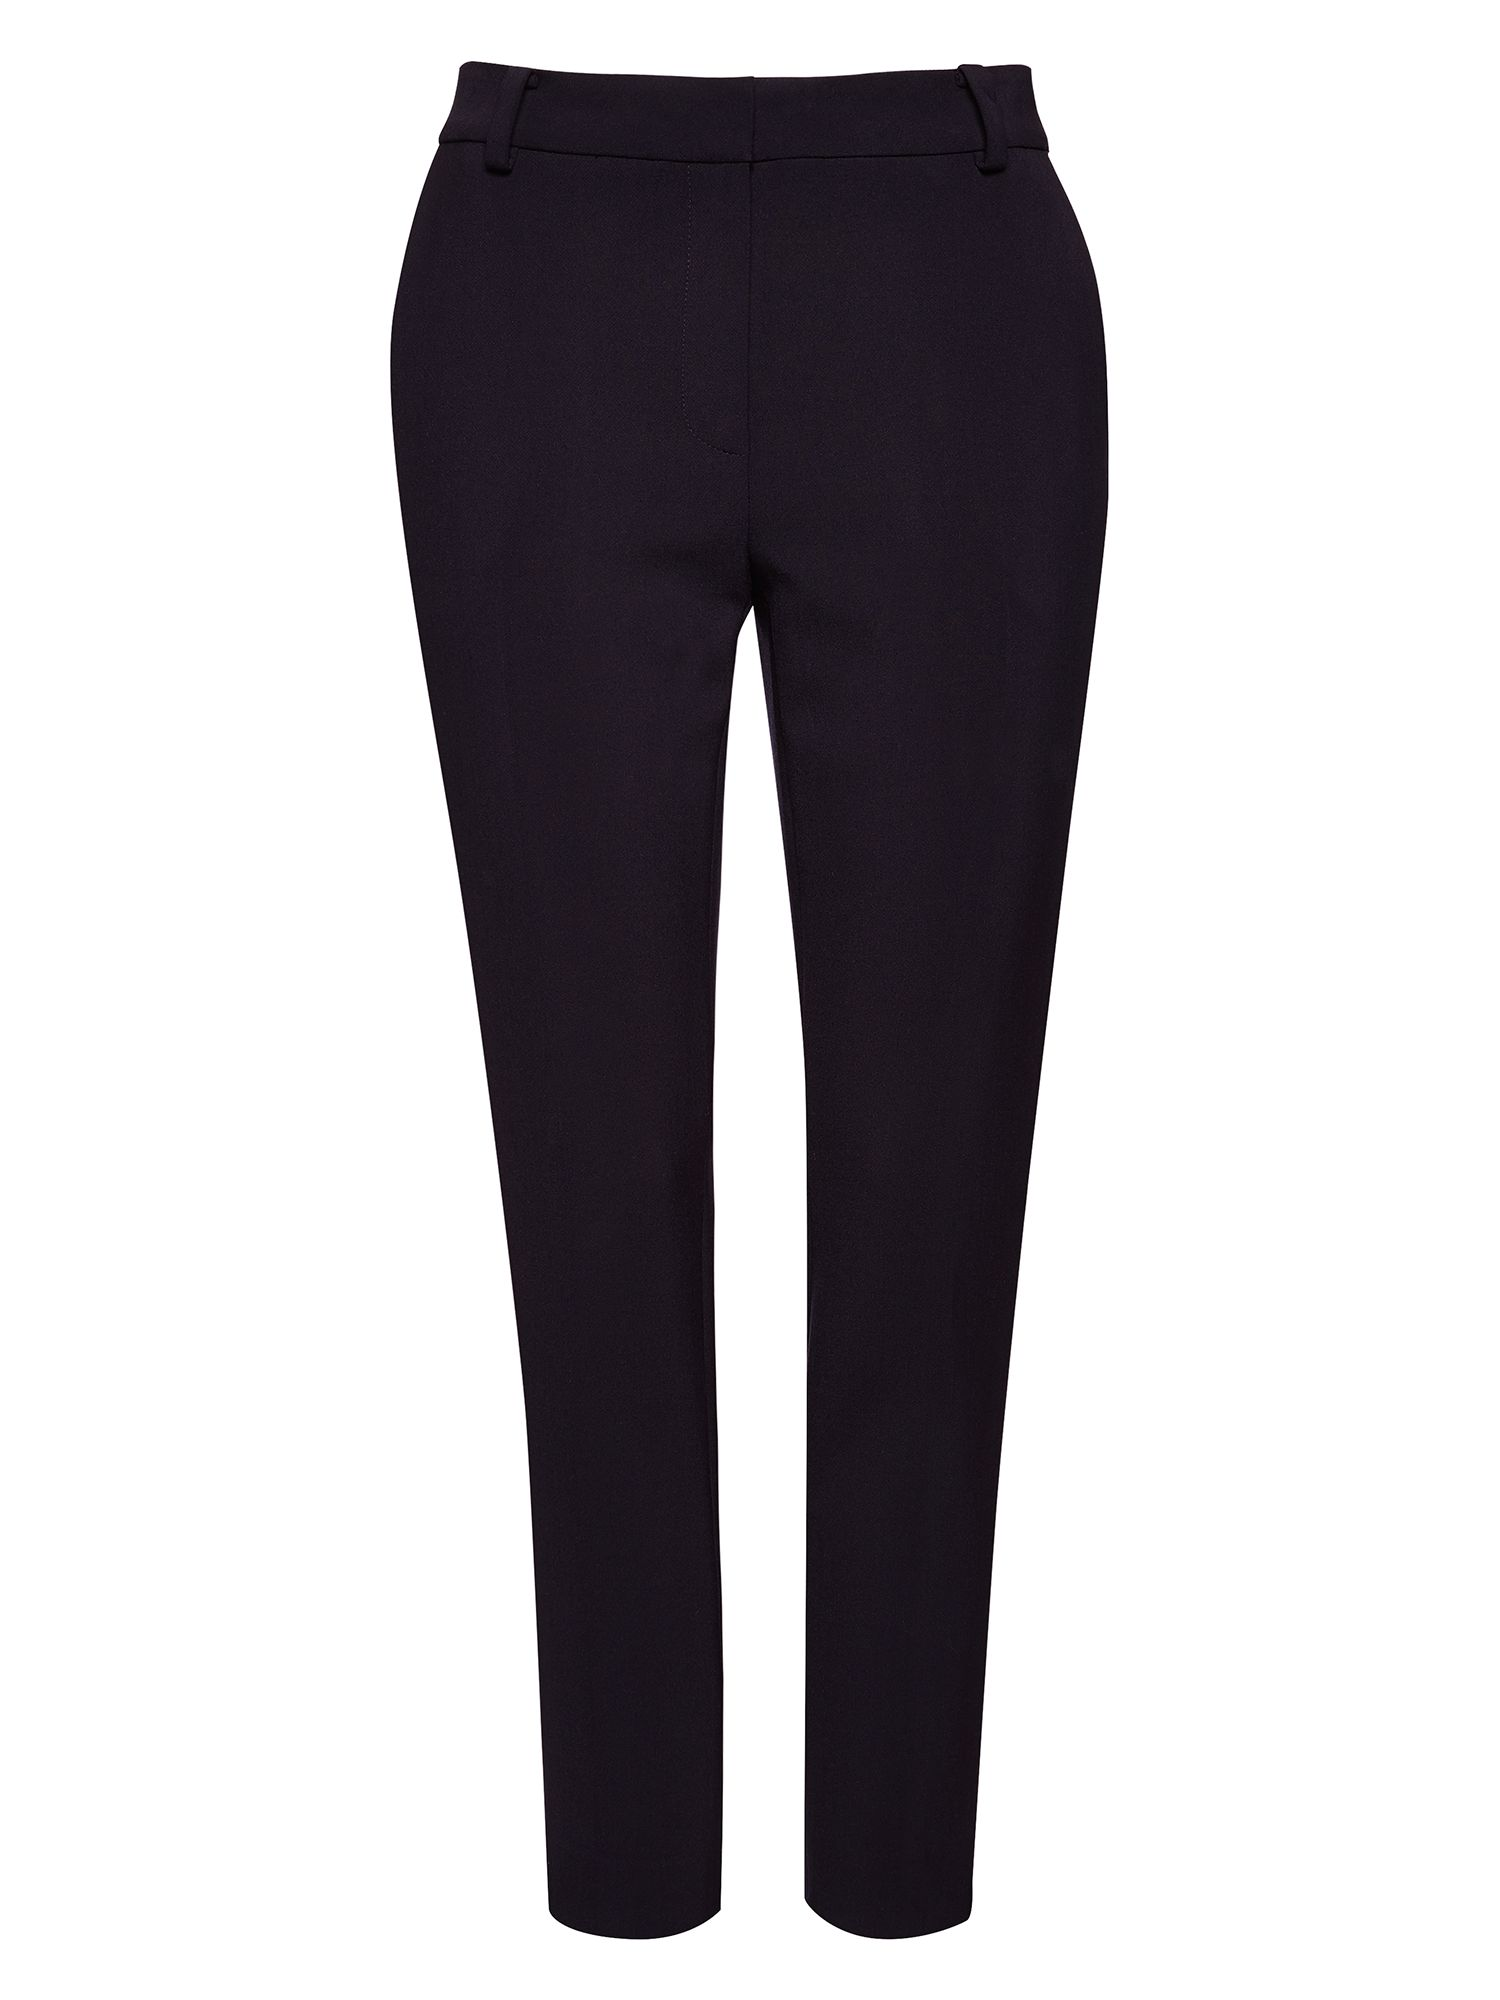 Jaeger Jaeger: Stretch 7/8ths Trousers, Blue